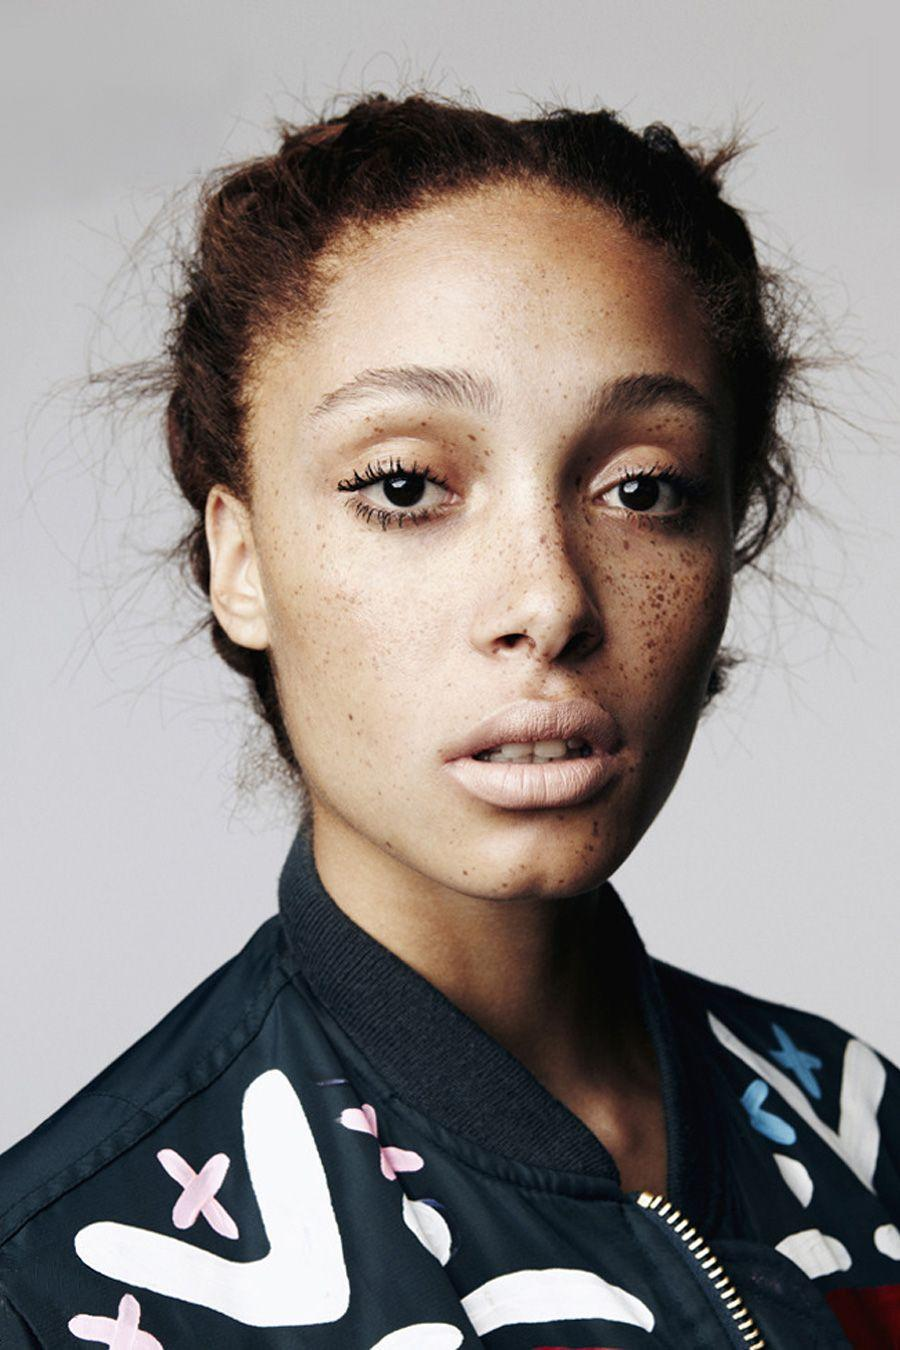 Adwoa Aboah.... Because she looks like she could be our daughter, at